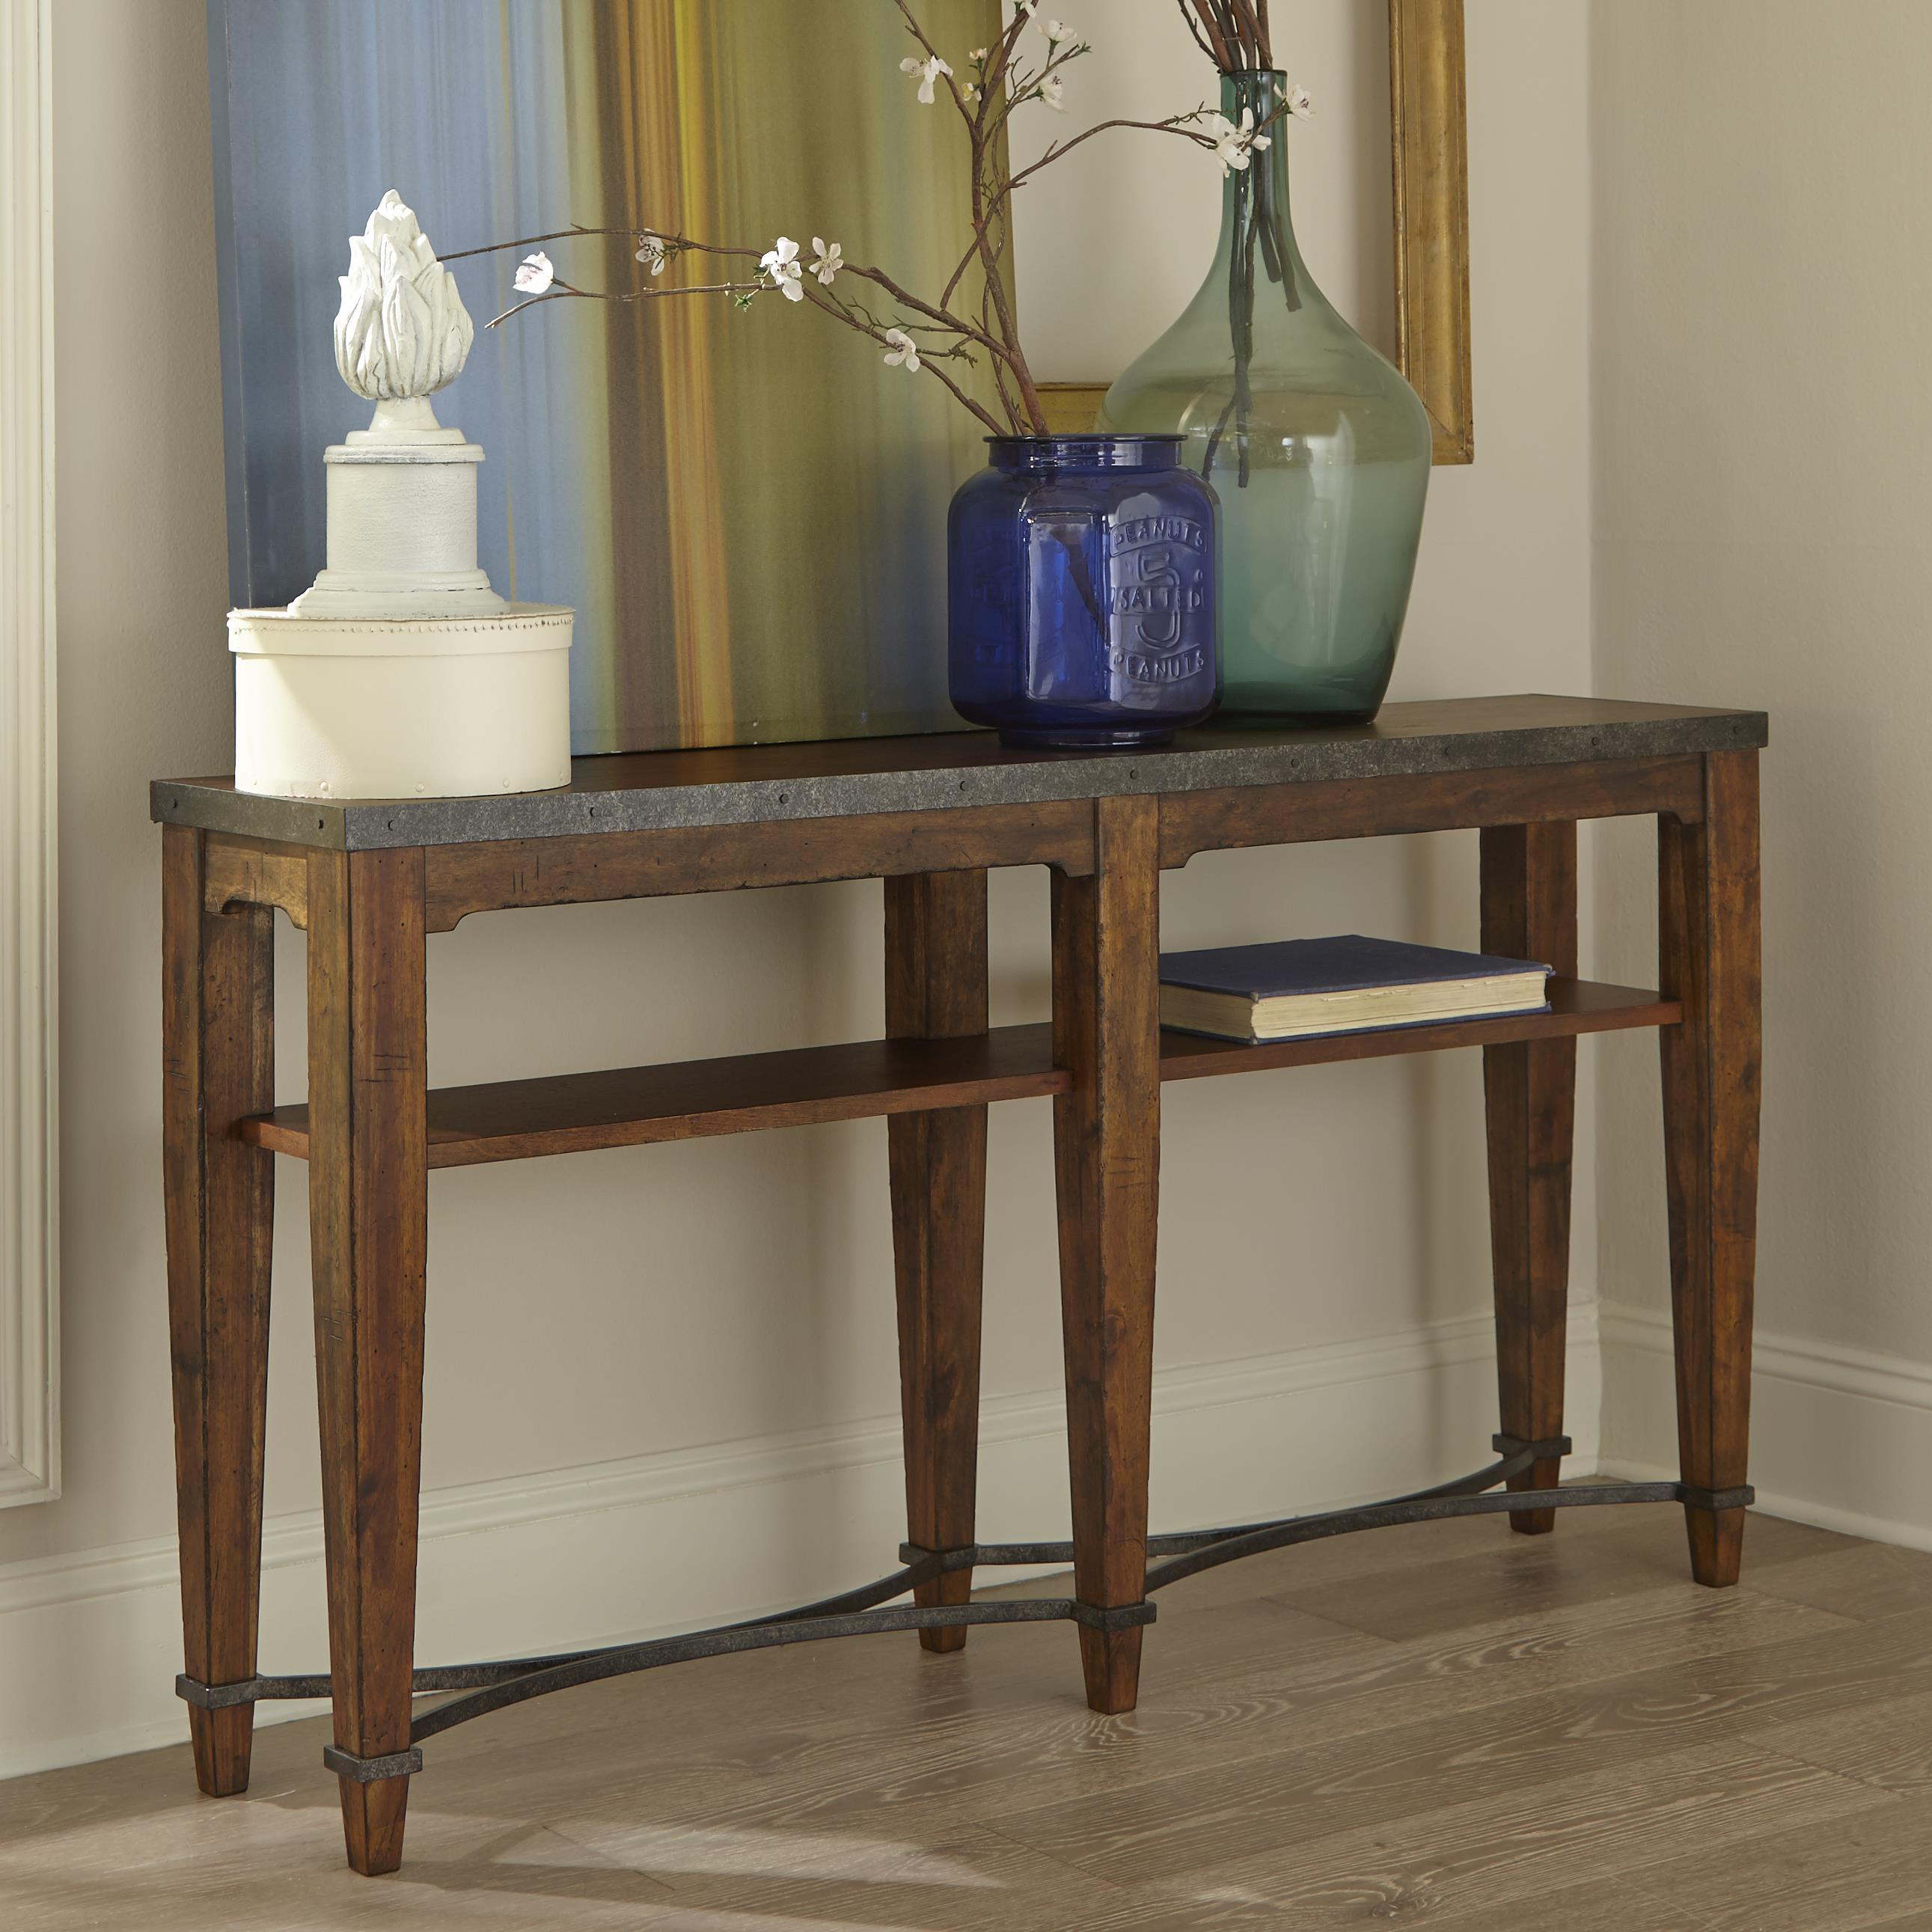 Ginkgo Sofa Table With Shelf And Metal Accents